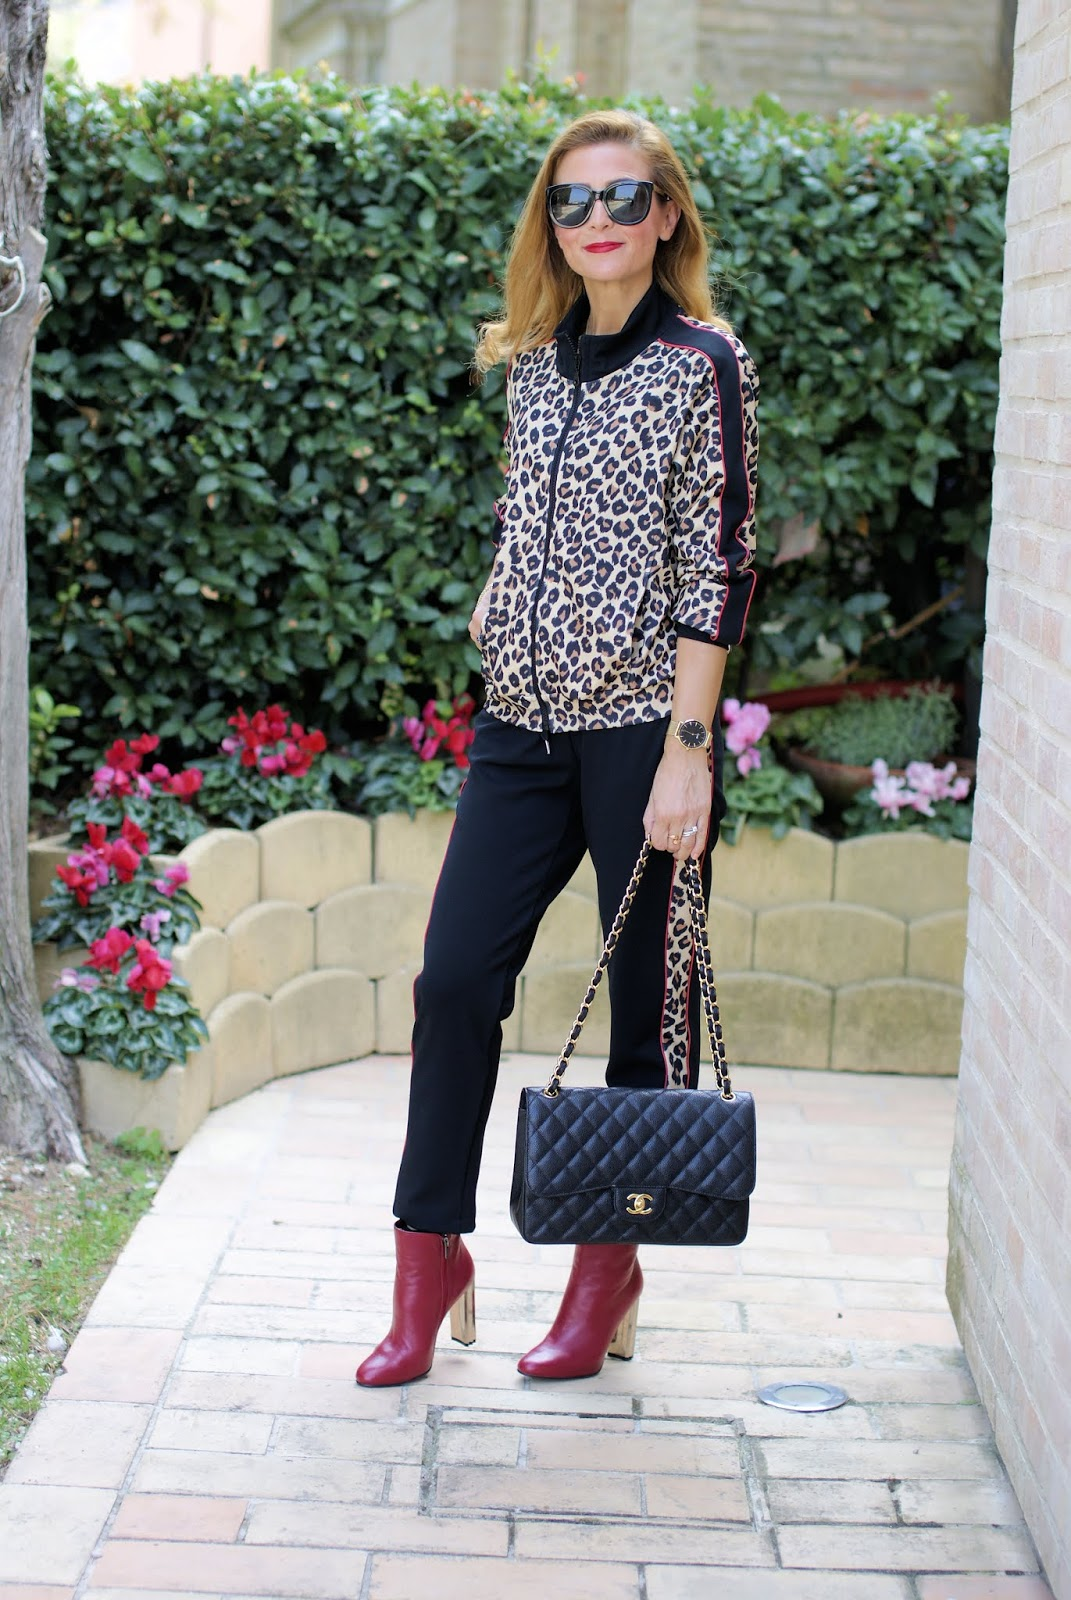 c0b8f8c268d2 How to wear animal prints: leopard print tracksuit | Fashion and ...